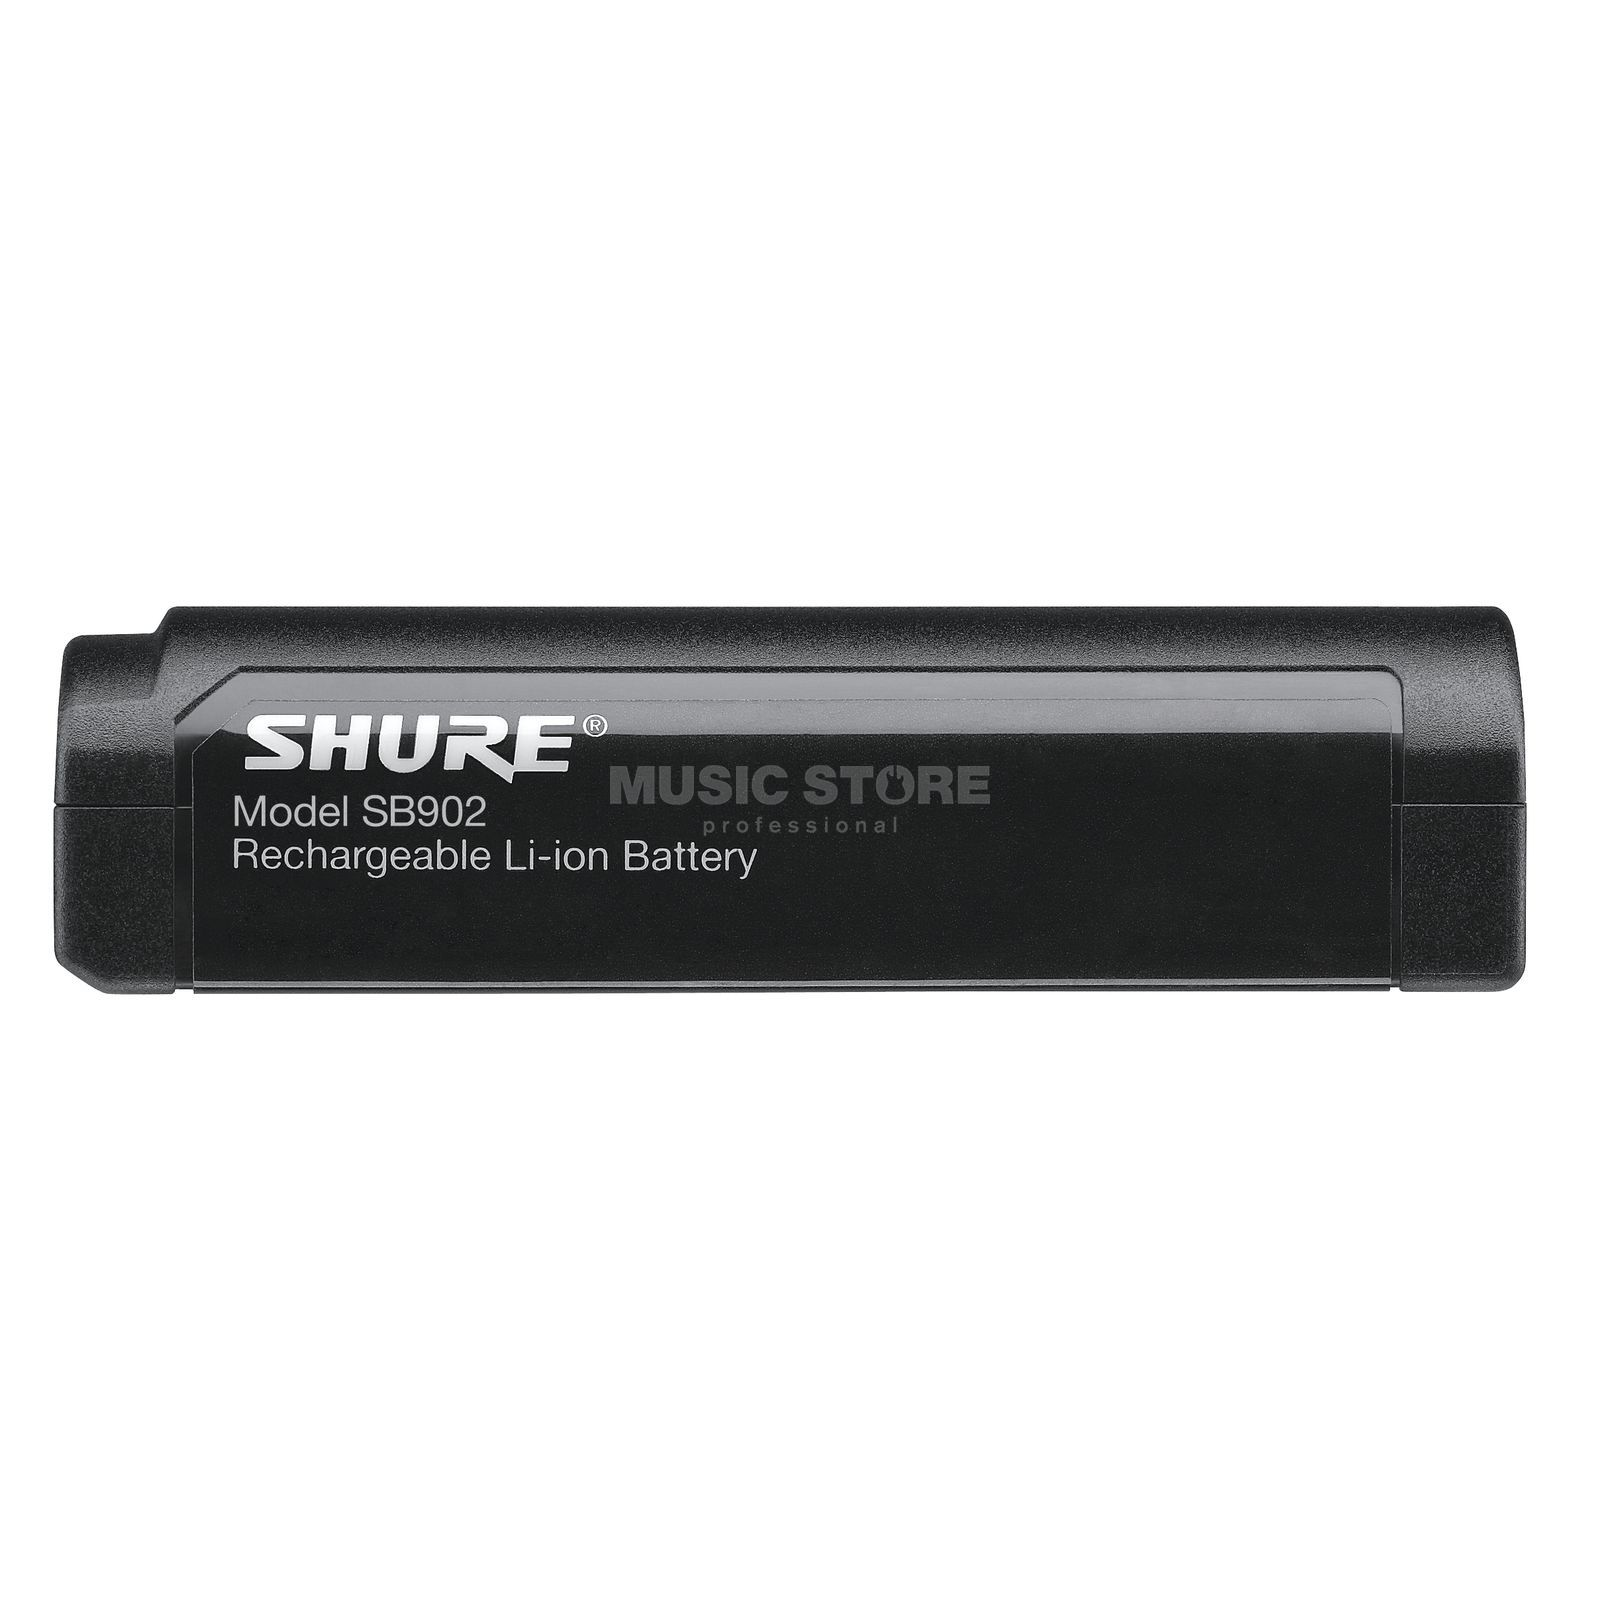 shure sb902 lithium ionen akku. Black Bedroom Furniture Sets. Home Design Ideas